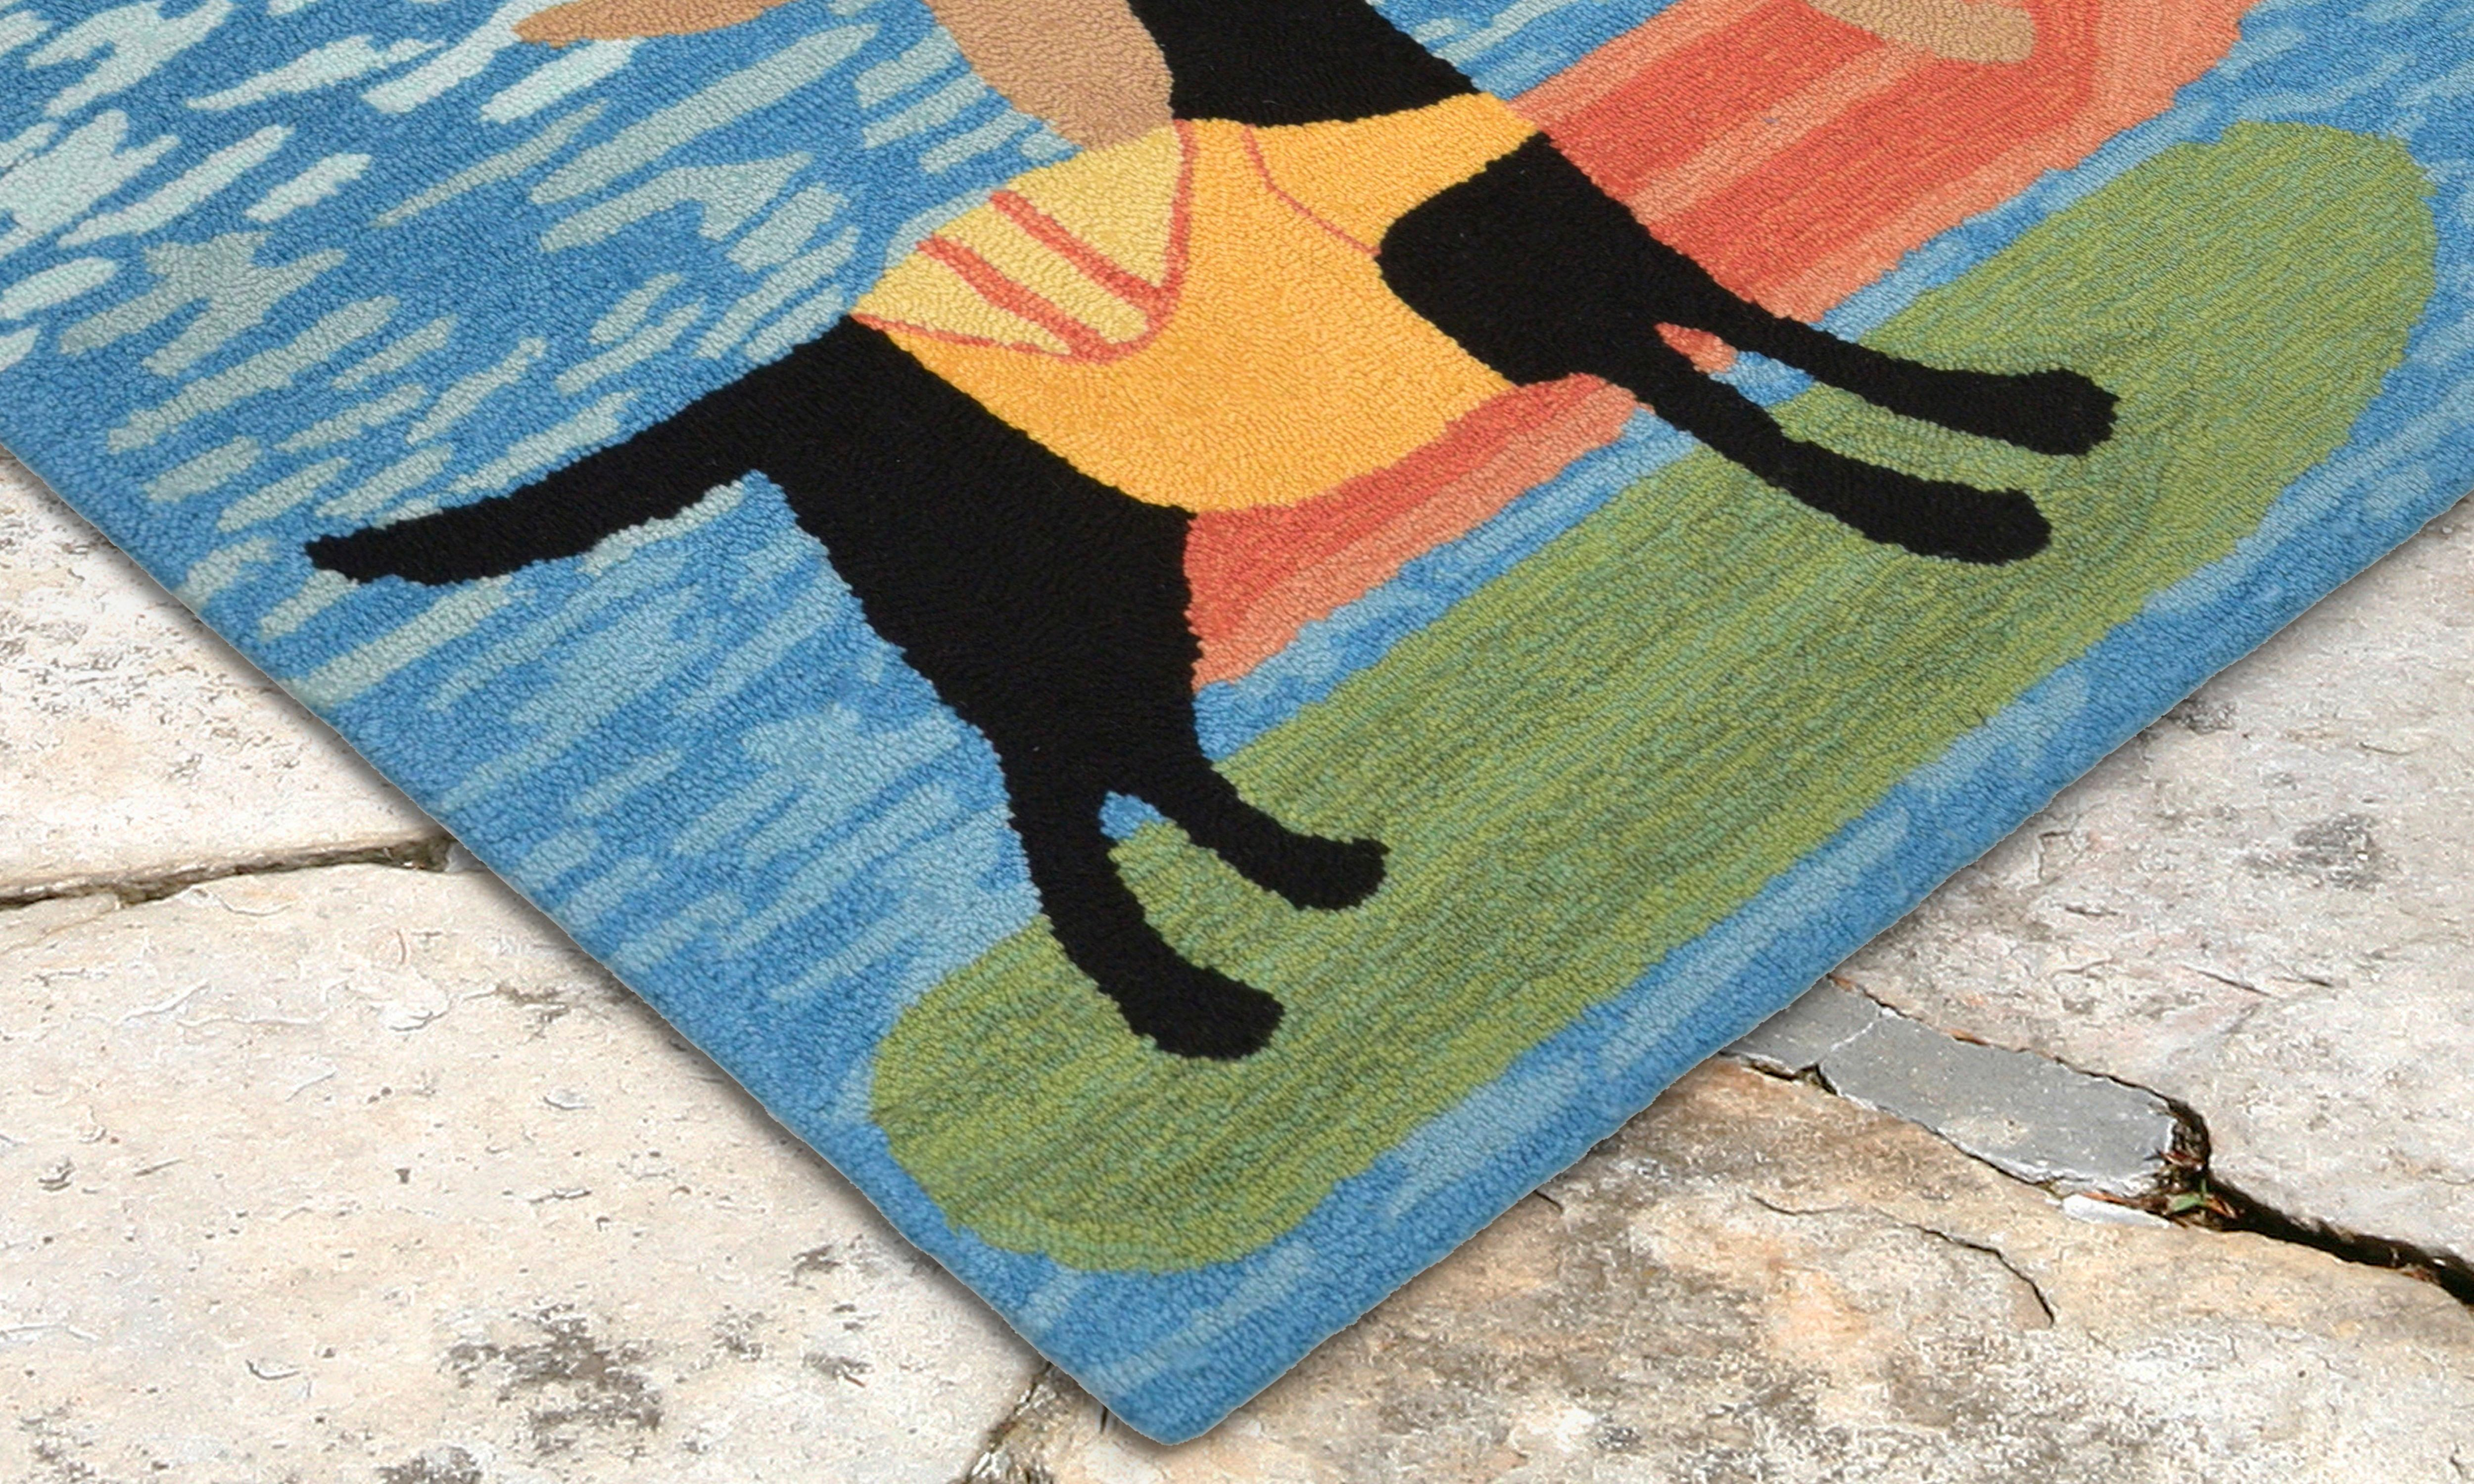 Amazon.com : Liora Manne FTP23240848 2408/48 Rooster Rugs, Indoor ...